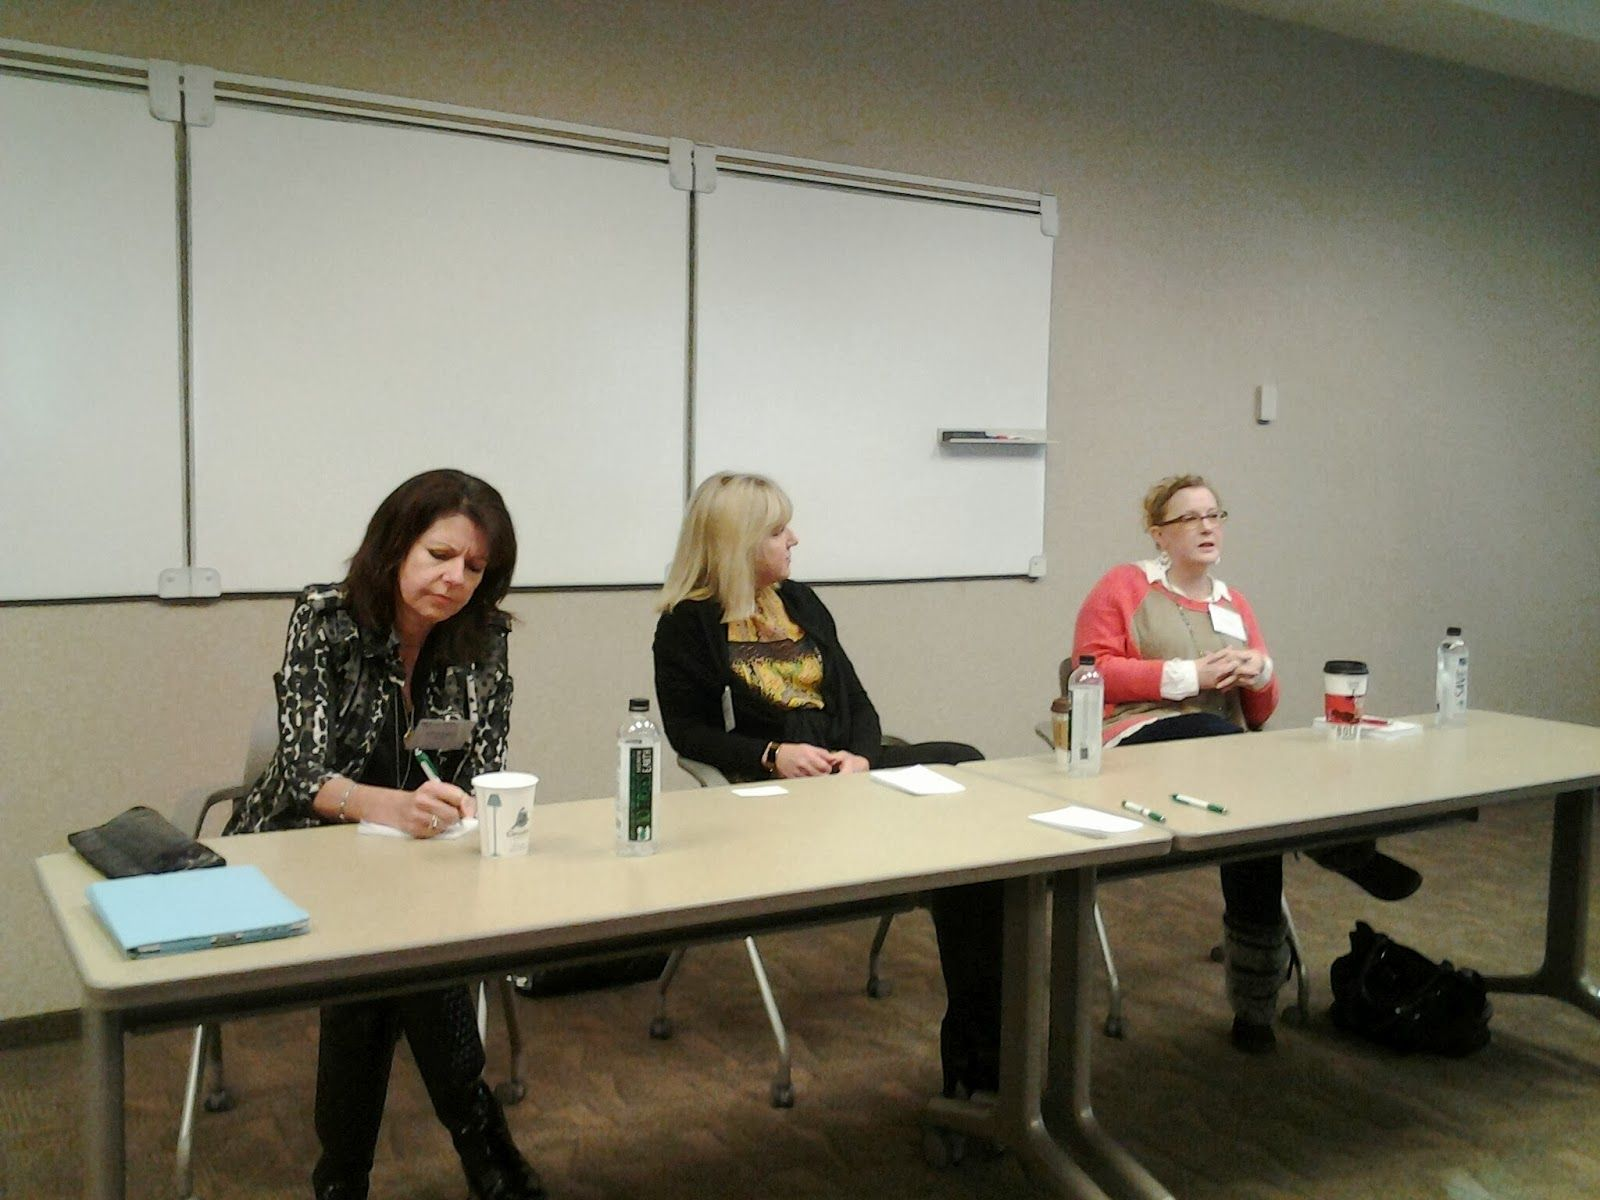 gillian gabriel elizabeth laukka and kathryn duncan l r share gillian gabriel elizabeth laukka and kathryn duncan l r share job seeking tips